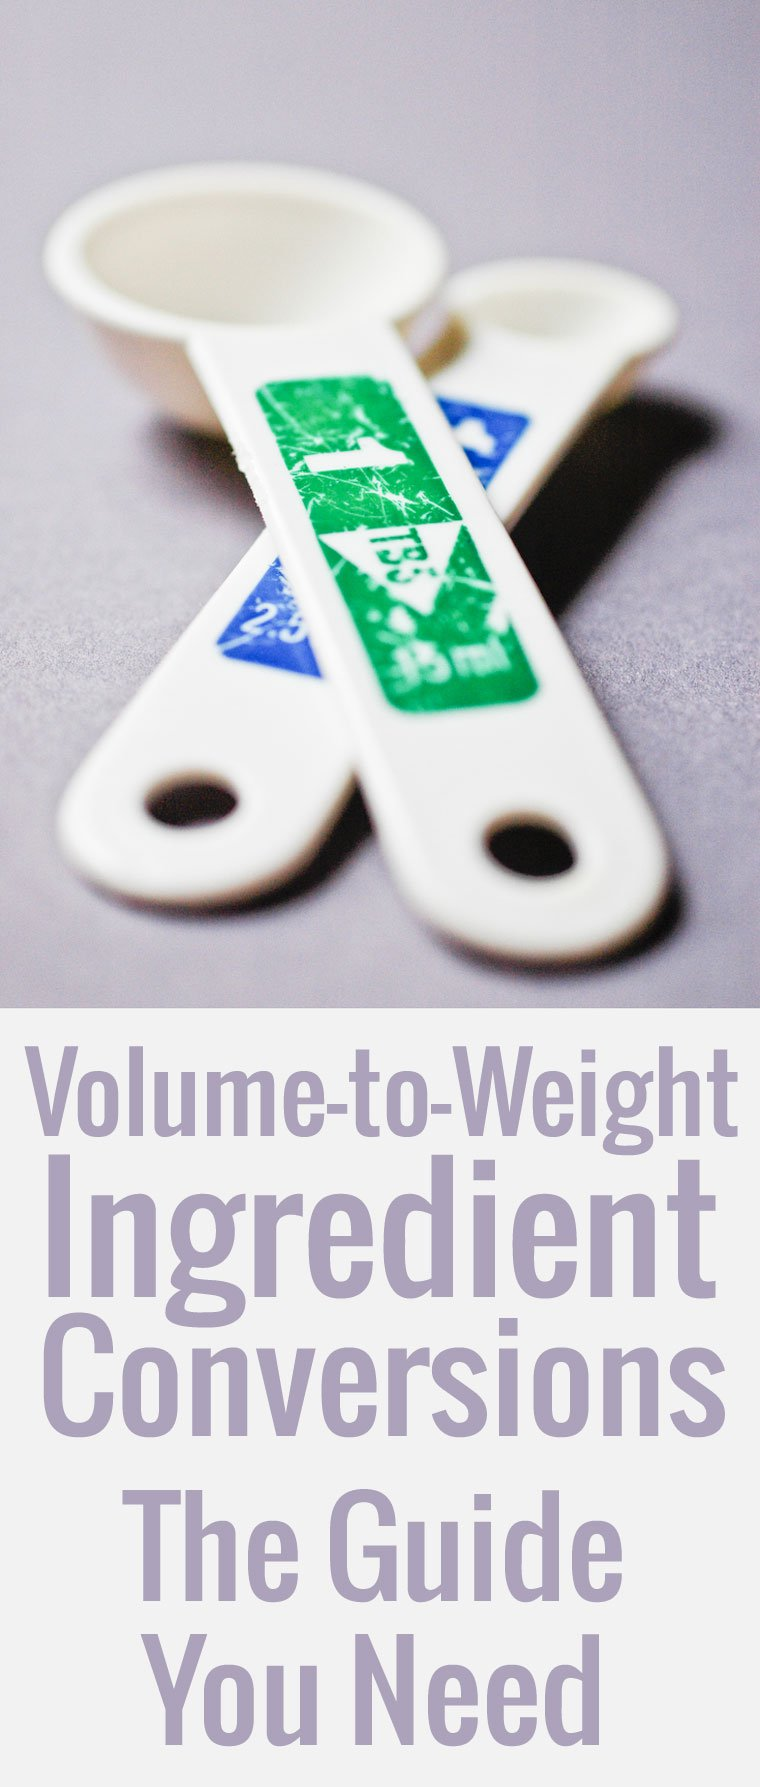 Ingredient conversions chocolate zucchini a handy guide to volume to weight conversions ingredient by ingredient so nvjuhfo Image collections